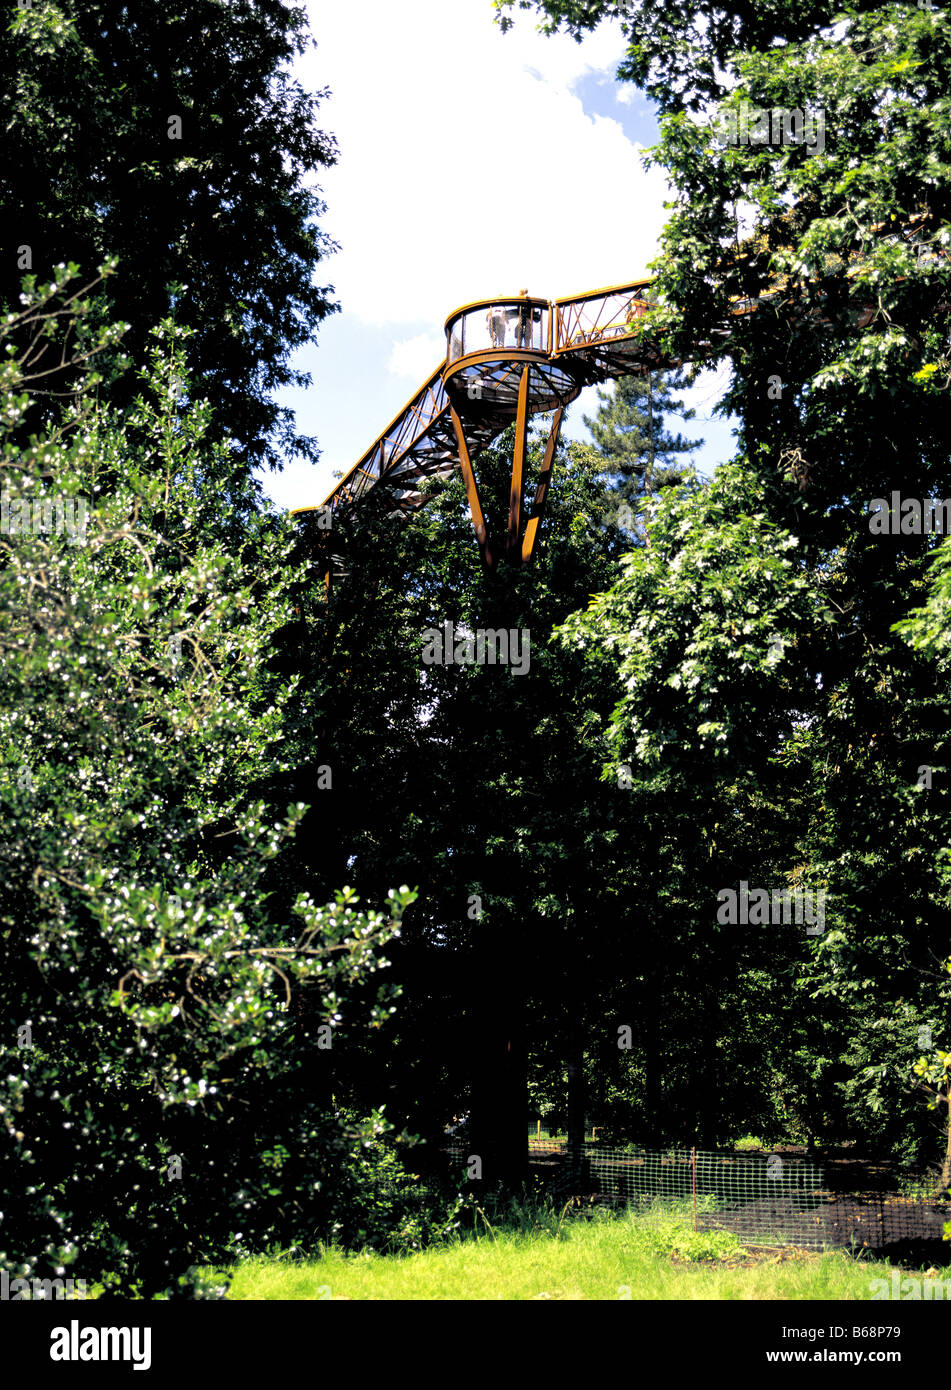 Rhizotron et Xstrata Treetop Walkway au Royal Botanical Gardens de Kew en Angleterre Surrey Photo Stock